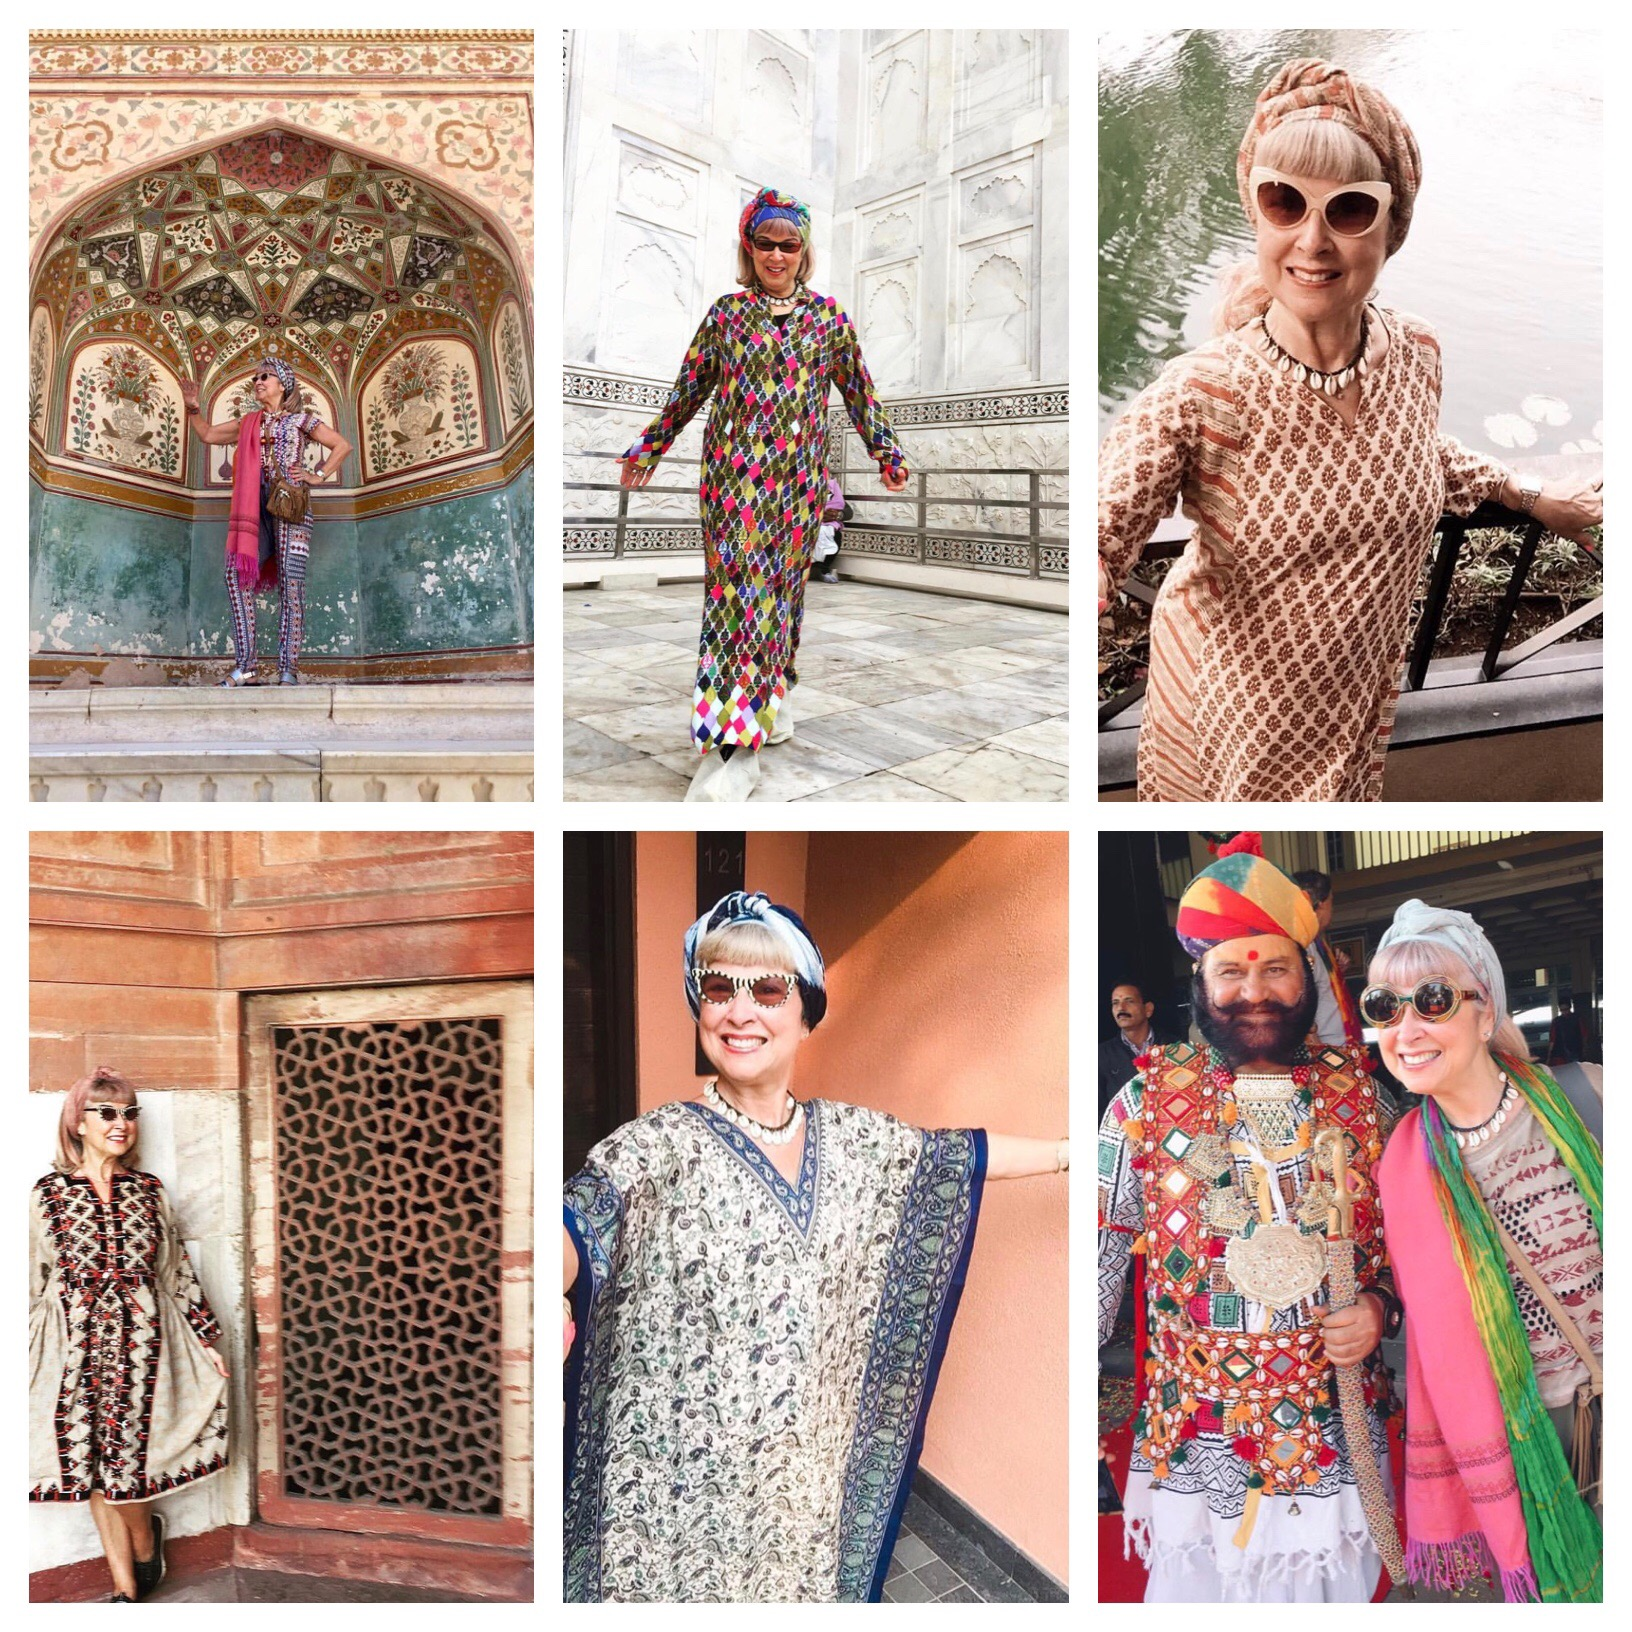 From L-R: Amber Fort, Jaipur, the invisible Taj Mahal, the Leela Hotel in Goa, Humayun's Tomb in Delhi, selfie taken by my door inGoa, and Bikaner, the city of camels and awesome costumes.